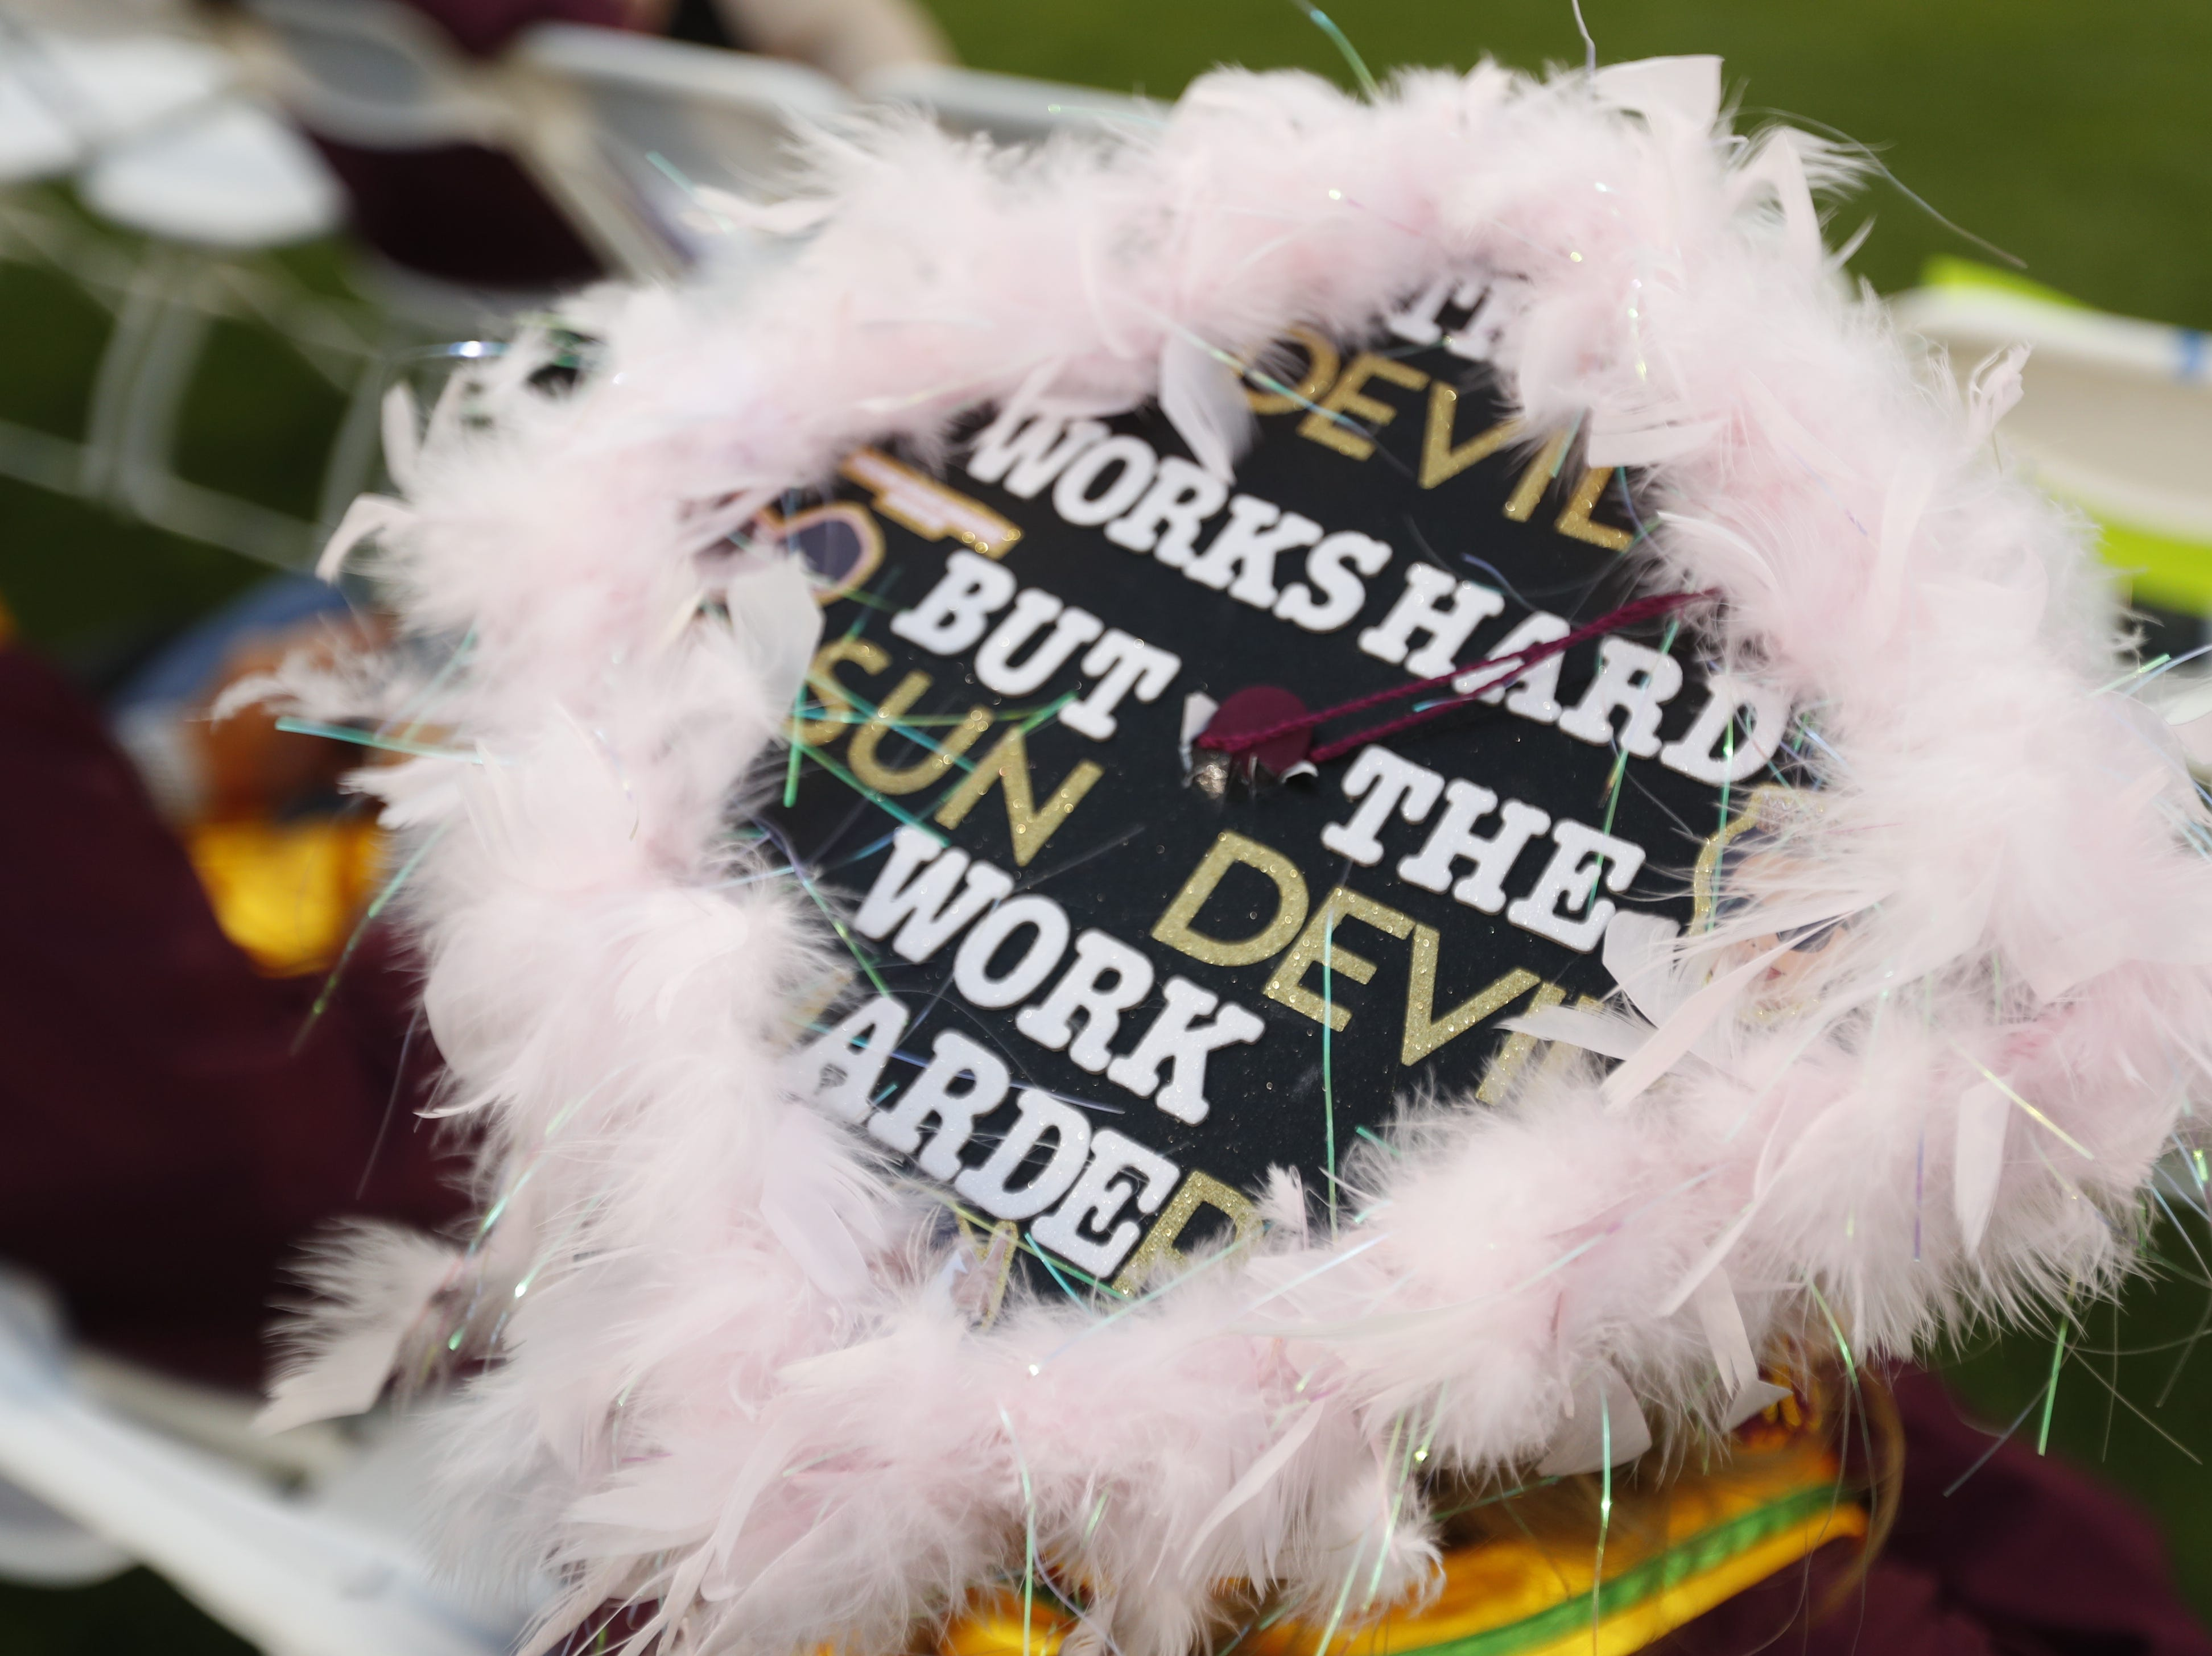 Grad cap designs during ASU's Undergraduate Commencement at Sun Devil Stadium in Tempe, Ariz. on May 6, 2019.